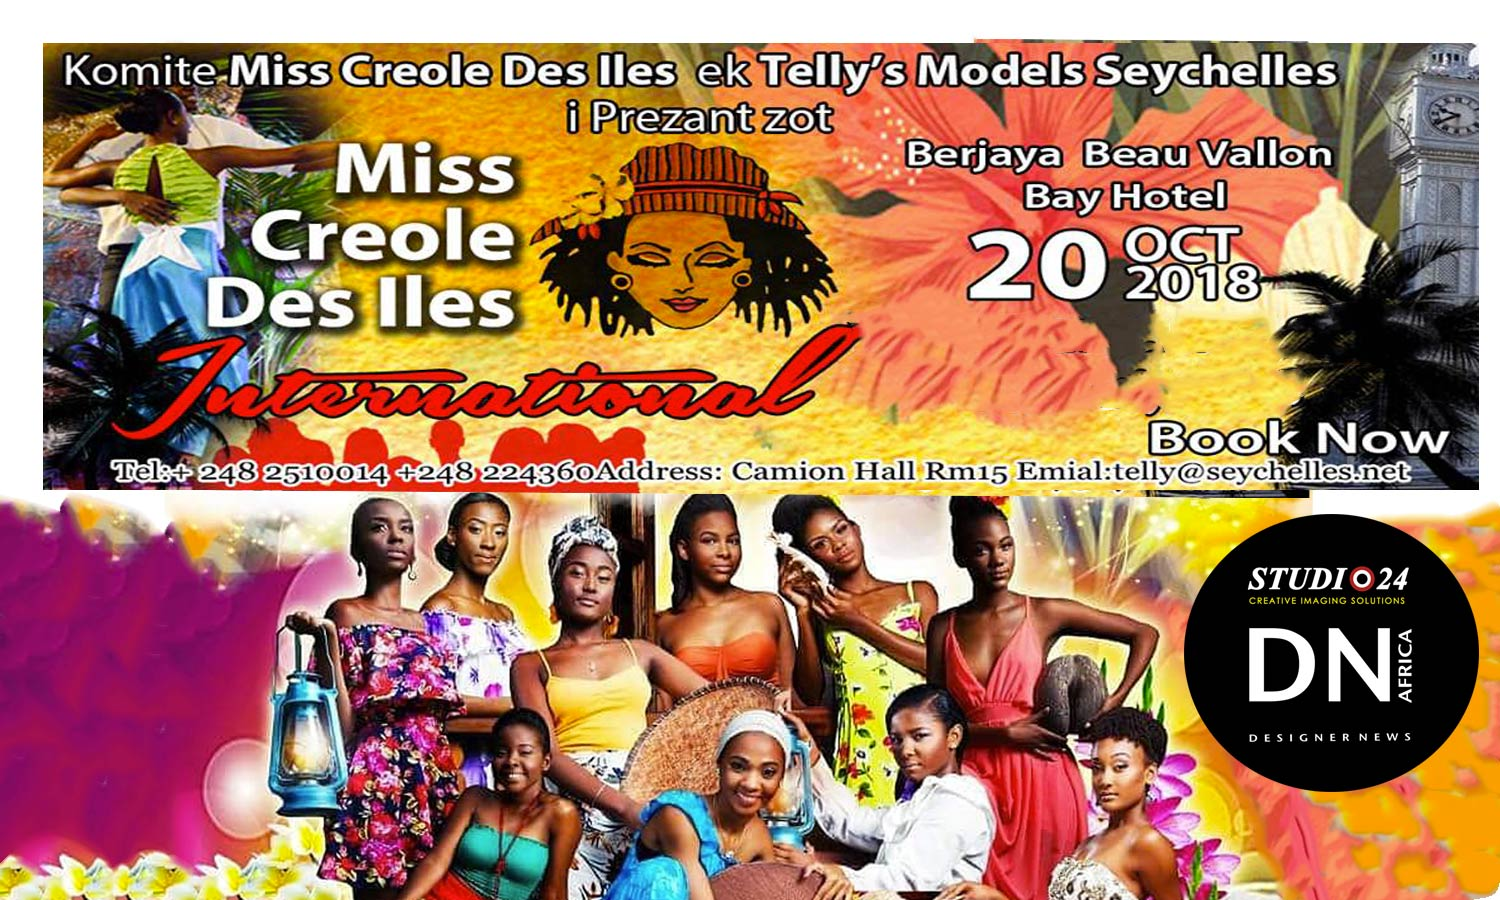 AFRICAN FASHION STYLE MAGAZINE - Miss Creole International Beauty Pageant by Tellymodellingagency Telly - Seychelles 2018 - Media Partner DN MAG, DN AFRICA -STUDIO 24 NIGERIA - STUDIO 24 INTERNATIONAL